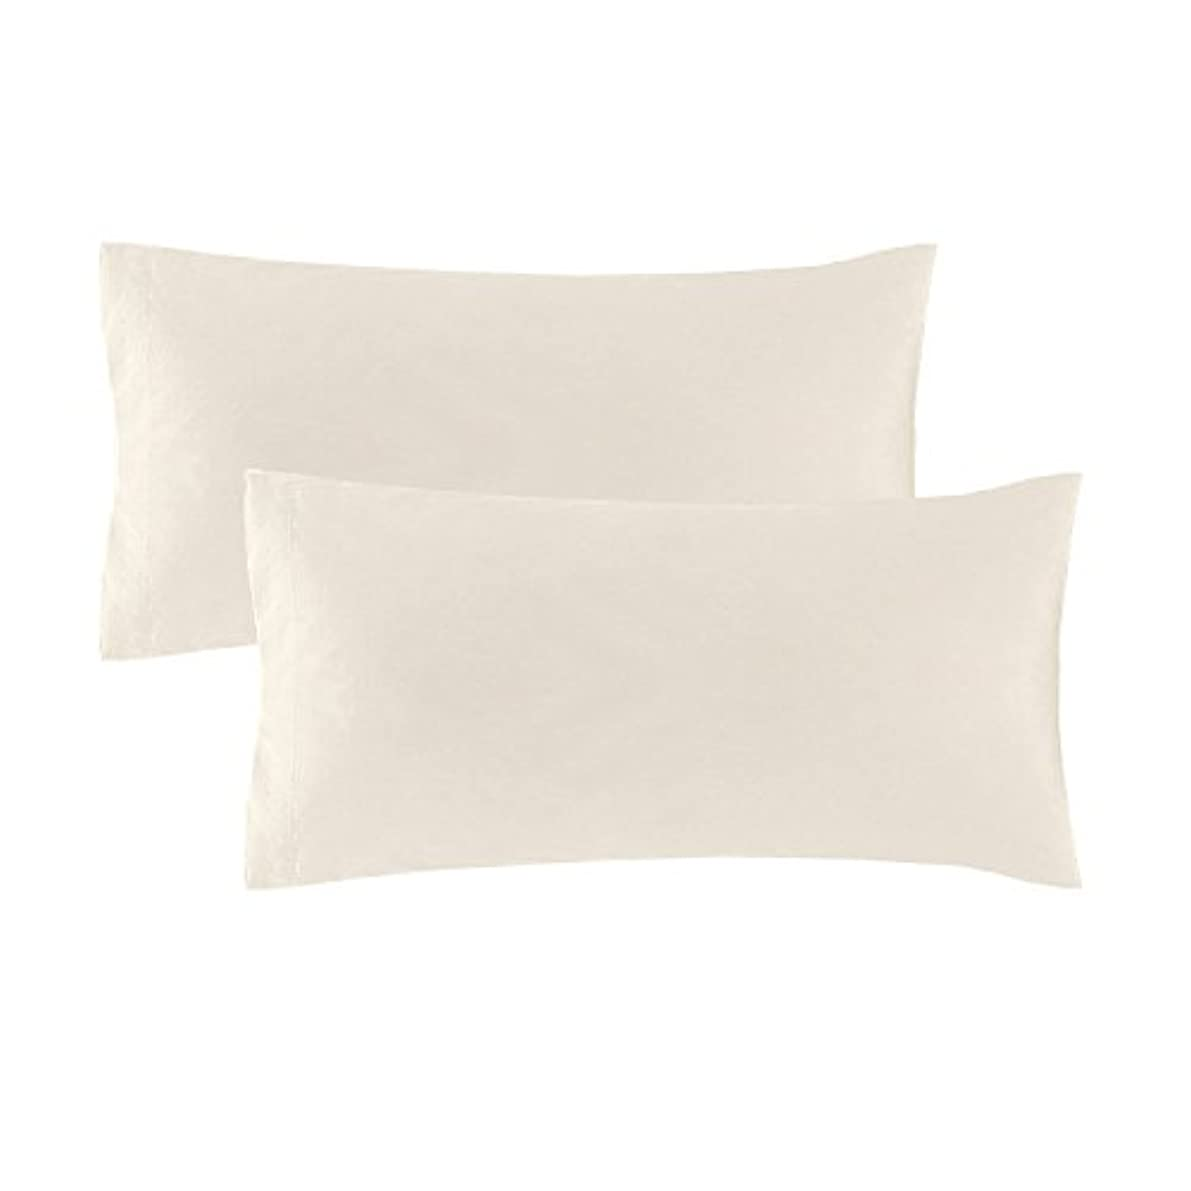 Echelon Home Vintage Standard Washed Cotton Percale Cases [Pair] Natural,